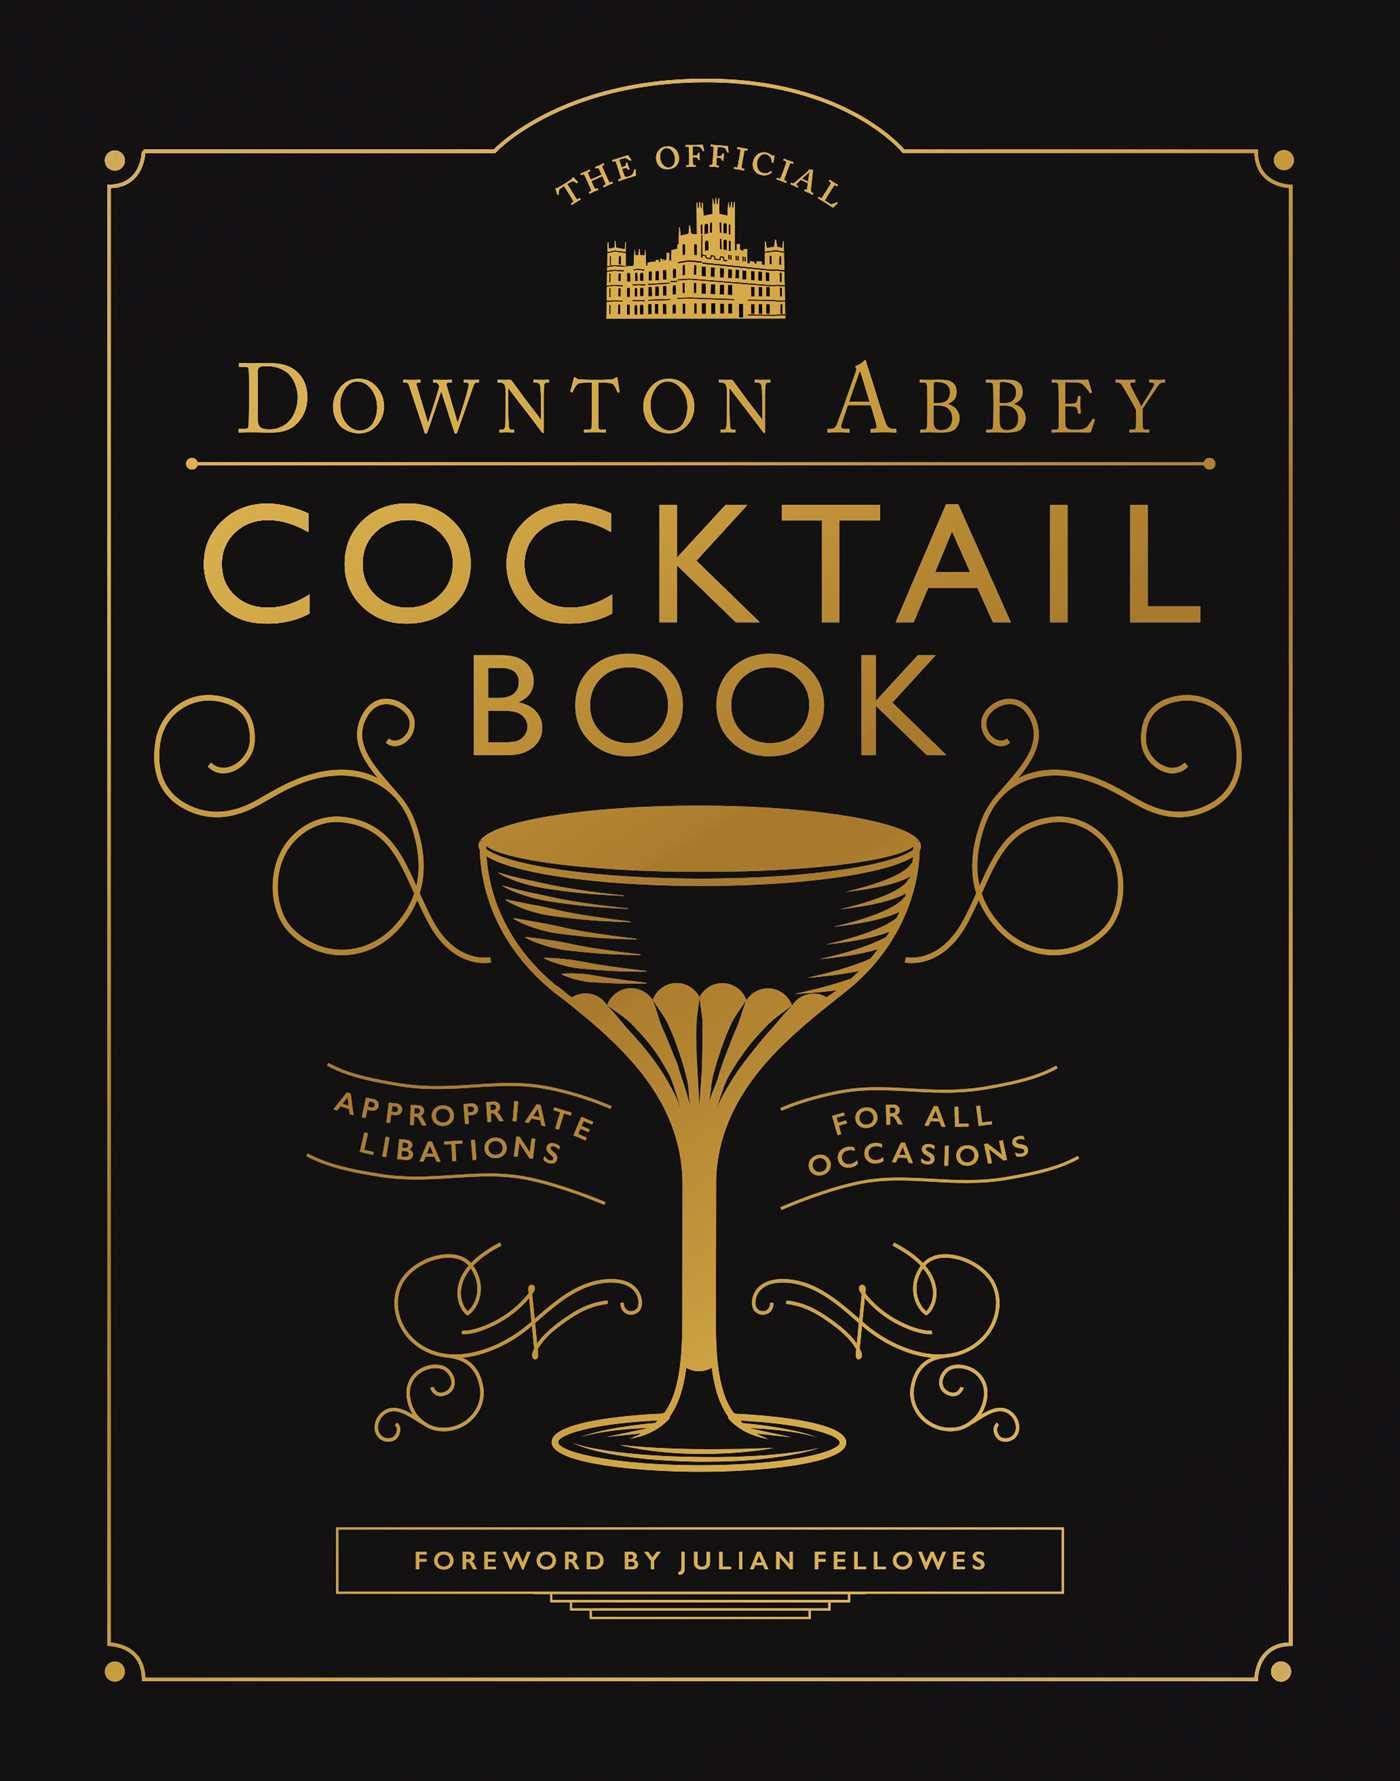 The Official Downton Abbey Cocktail Book (2019)